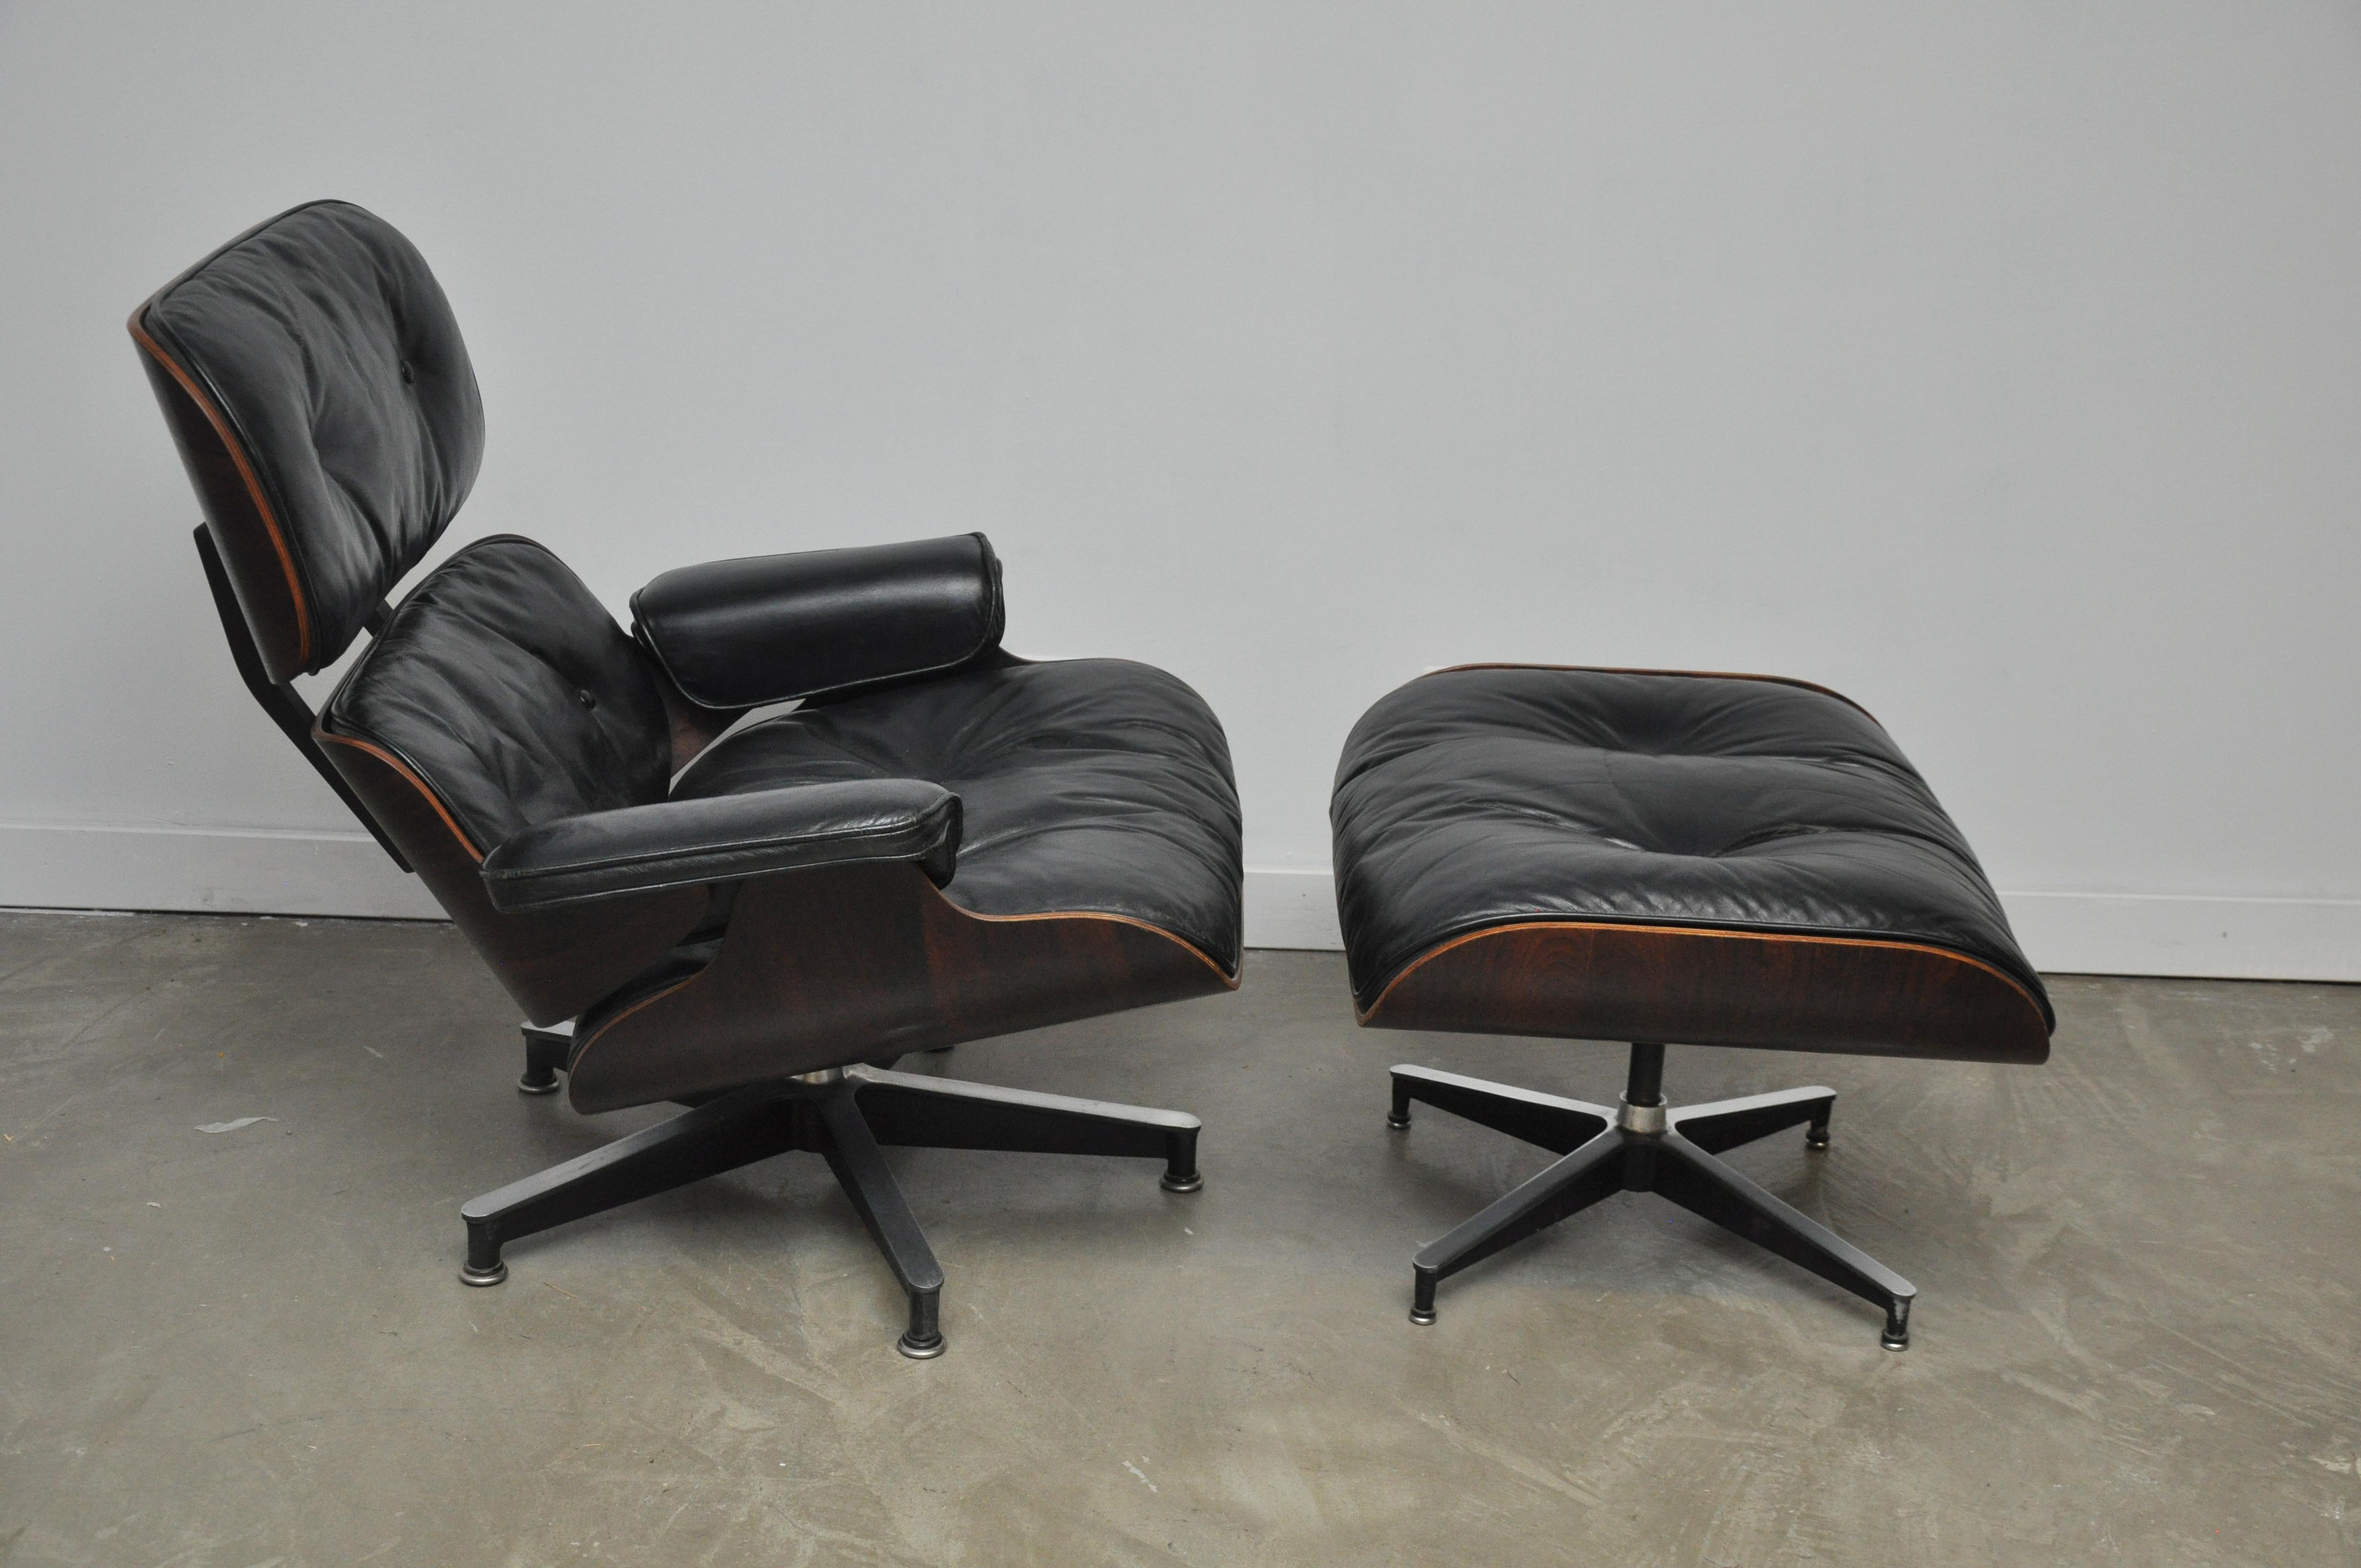 Charles Eames Lounge Chair exquisite rosewood charles eames lounge chair for herman miller decaso